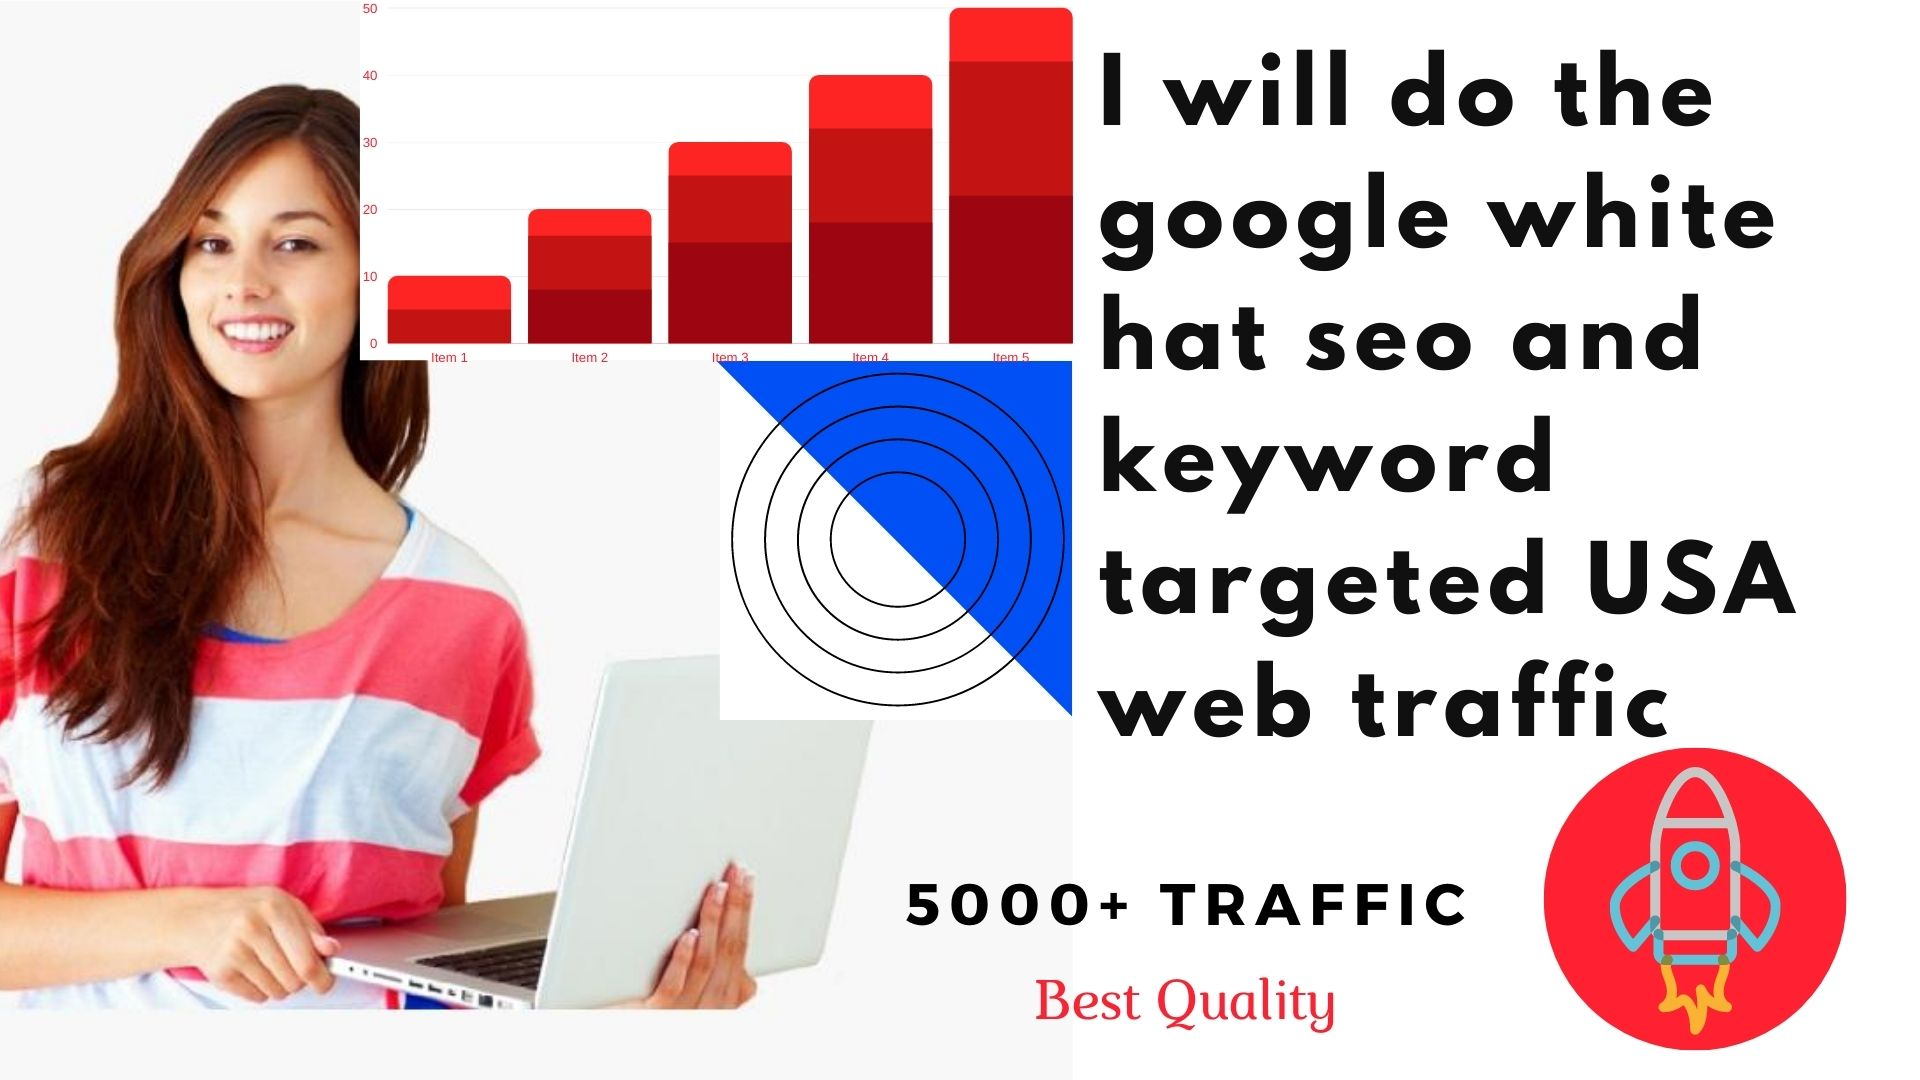 I will do the google white hat seo and keyword targeted 5000+ USA web traffic